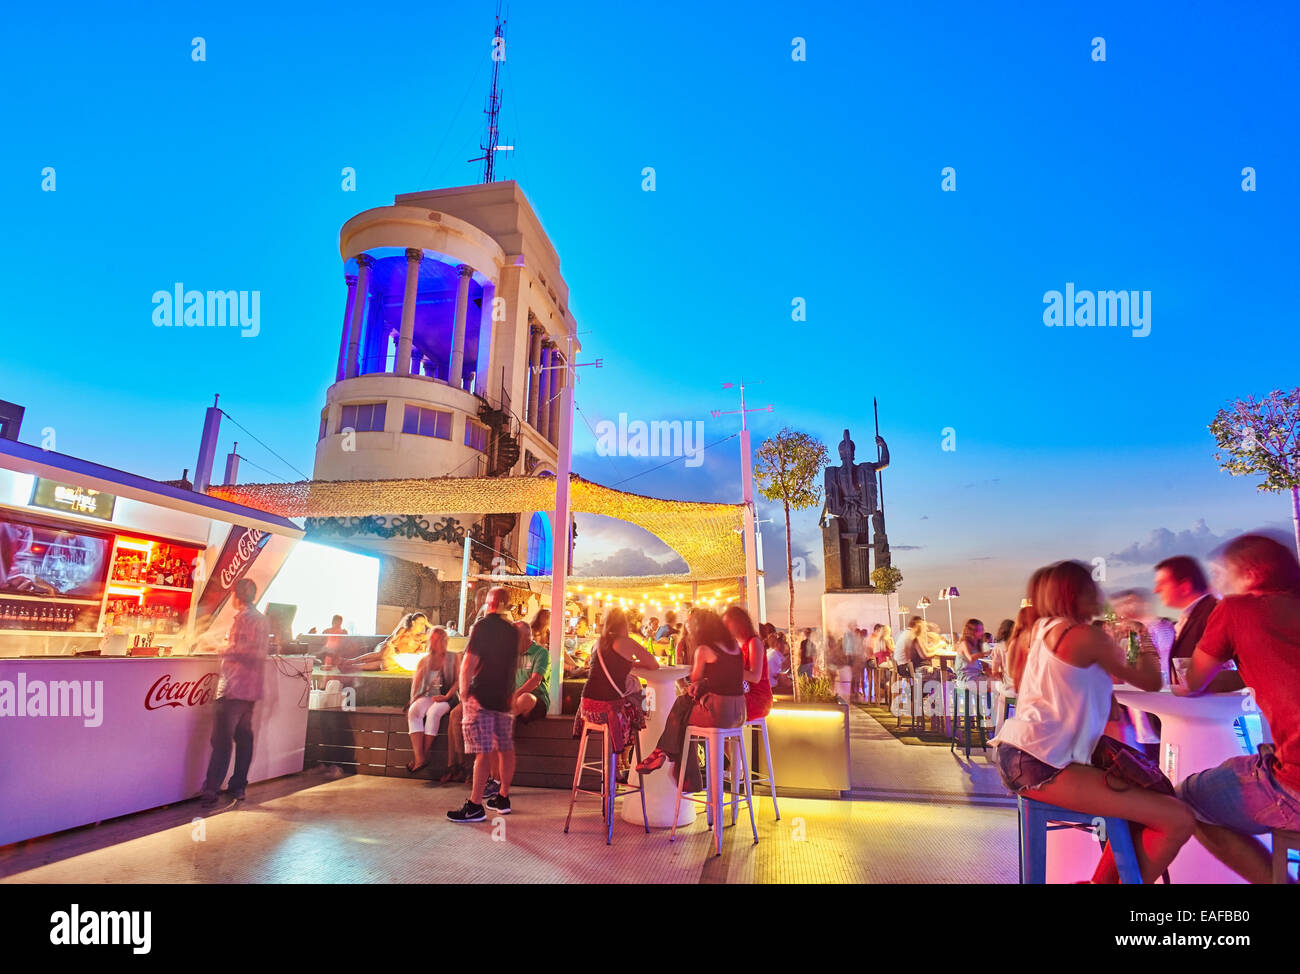 People at The Circulo de Bellas artes cultural center rooftop terrace. Madrid. Spain - Stock Image